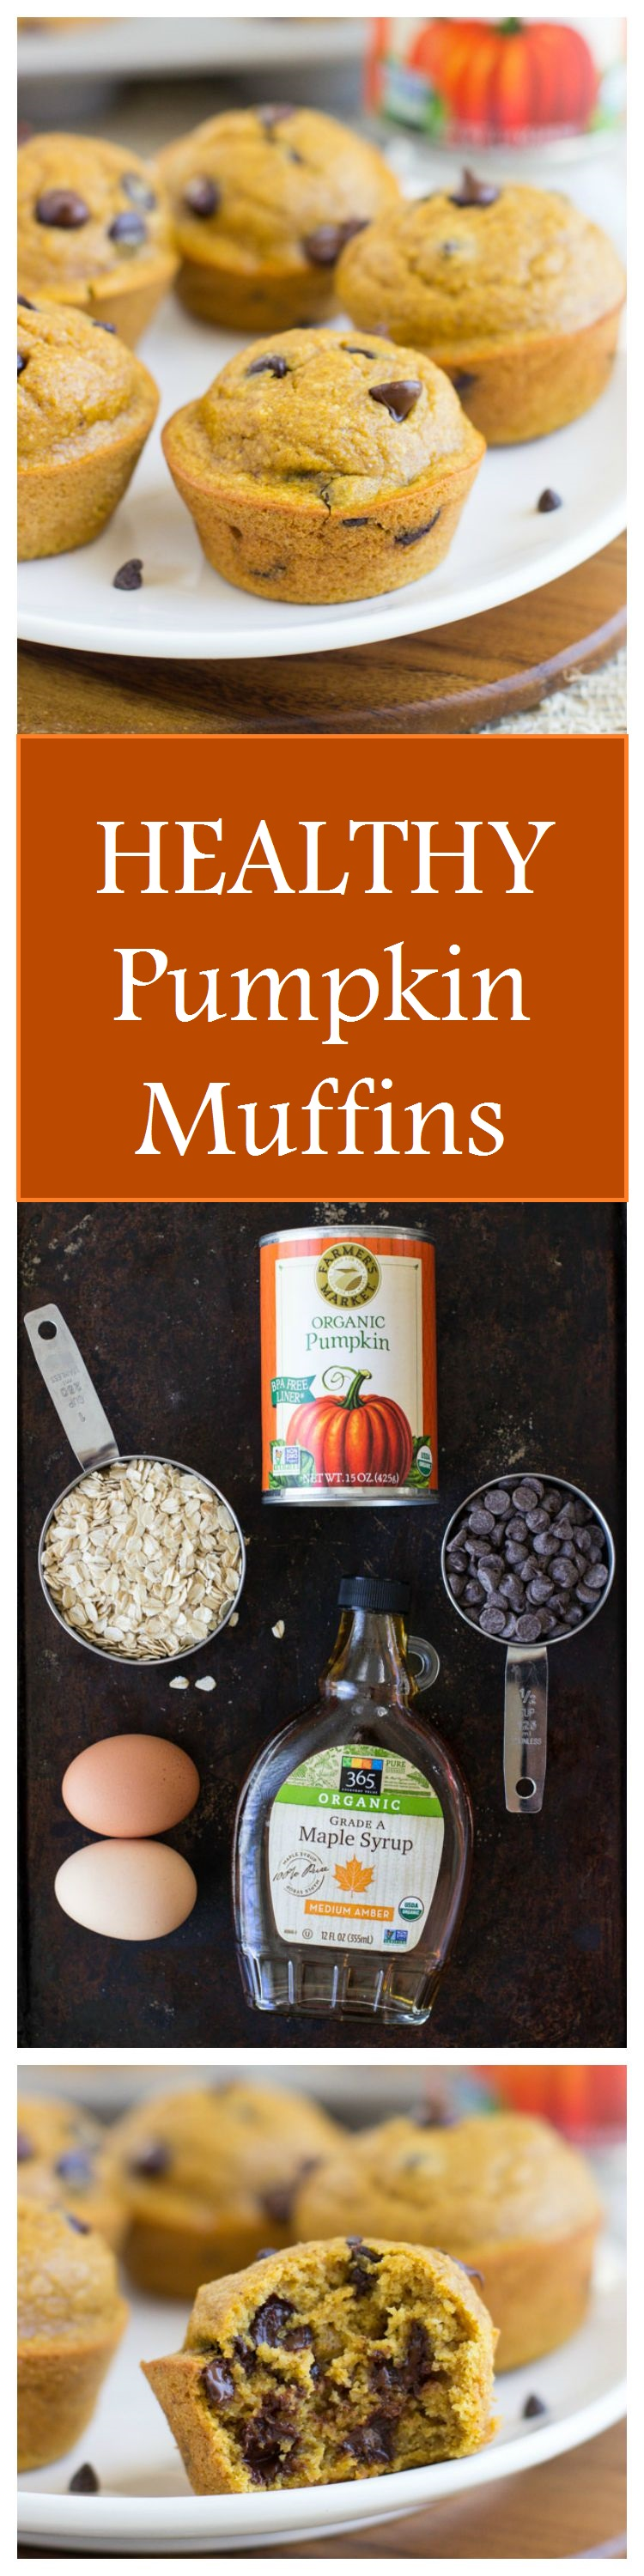 Healthy Flourless Pumpkin Muffins- made with wholesome ingredients! #dairyfree #glutenfree #refinedsugarfree